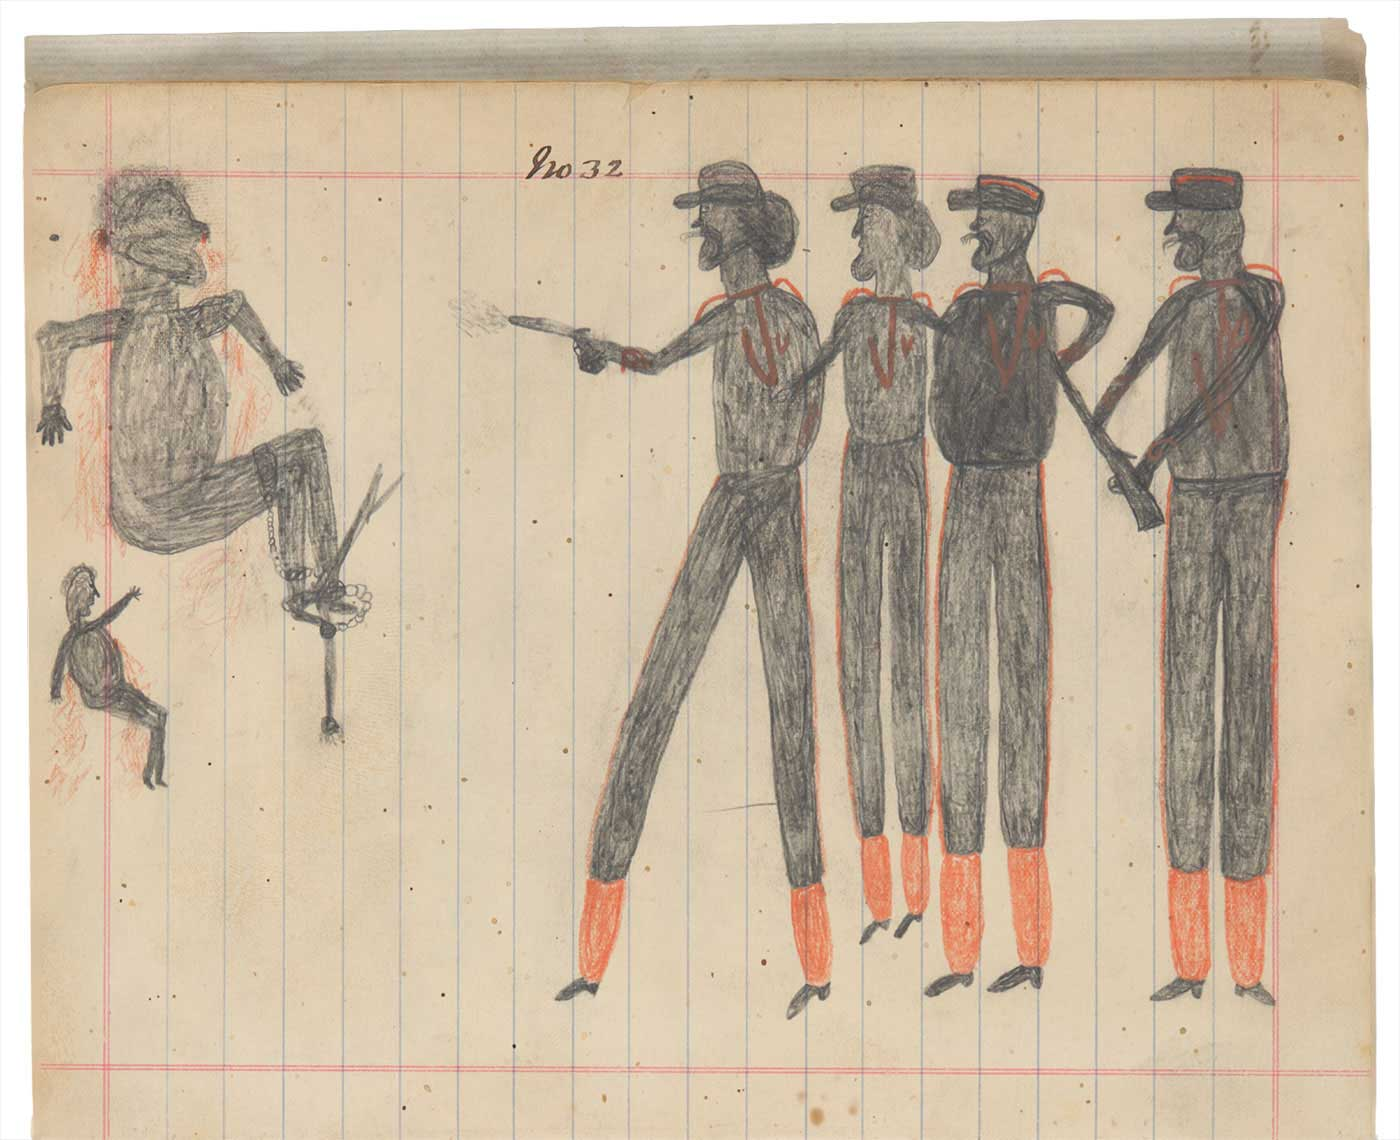 Sketchbook drawings of four men in uniform pointing a gun at two Indigenous people - click to view larger image